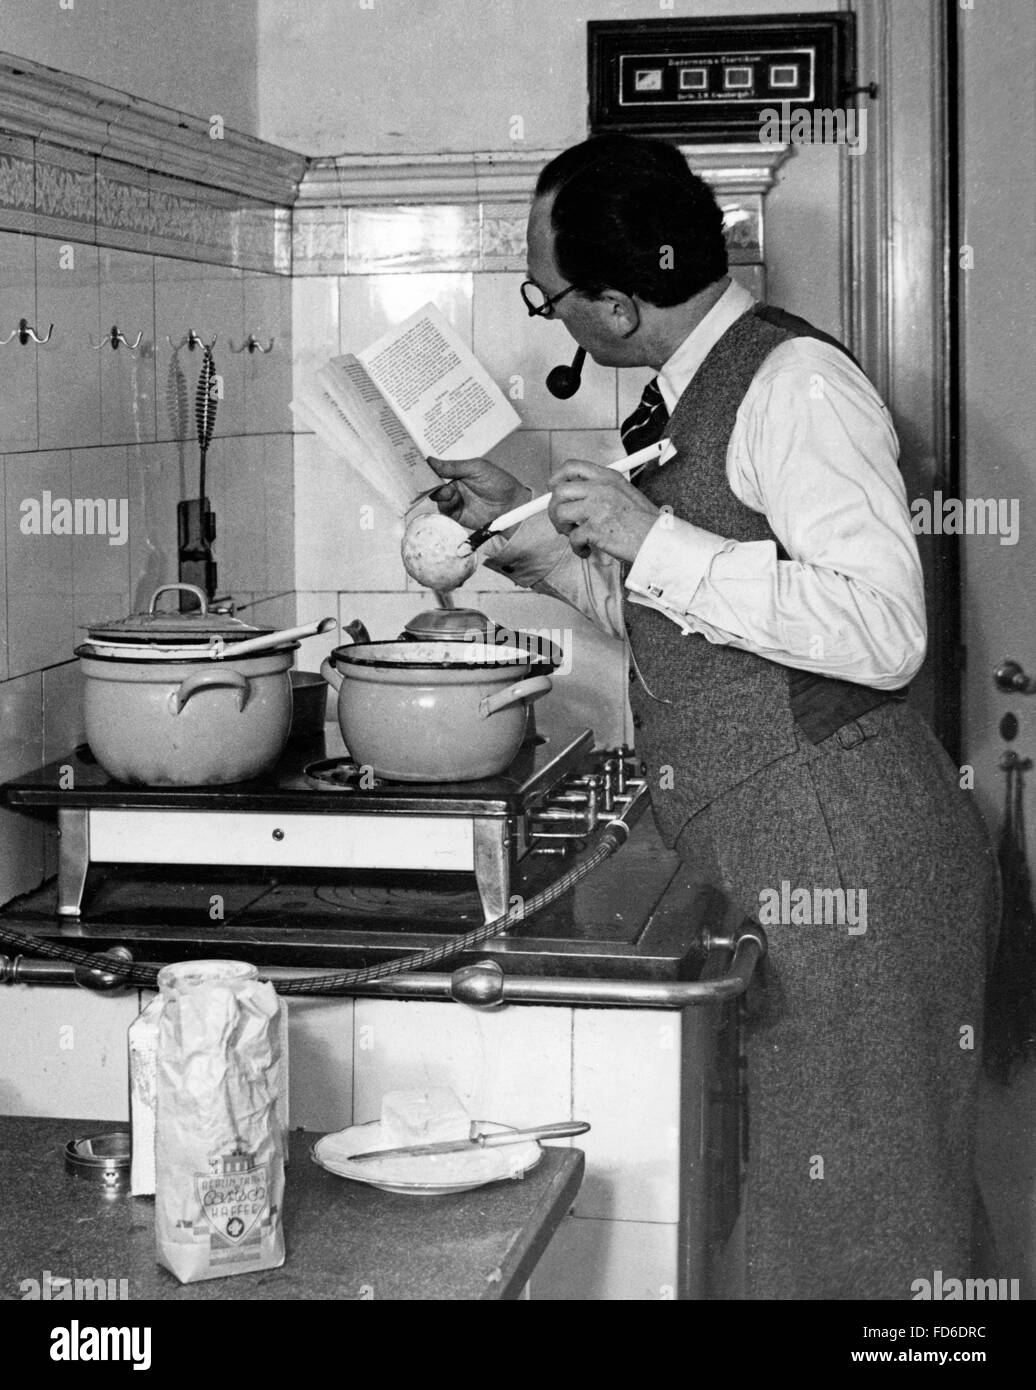 Men on household chores until 1990 - Stock Image